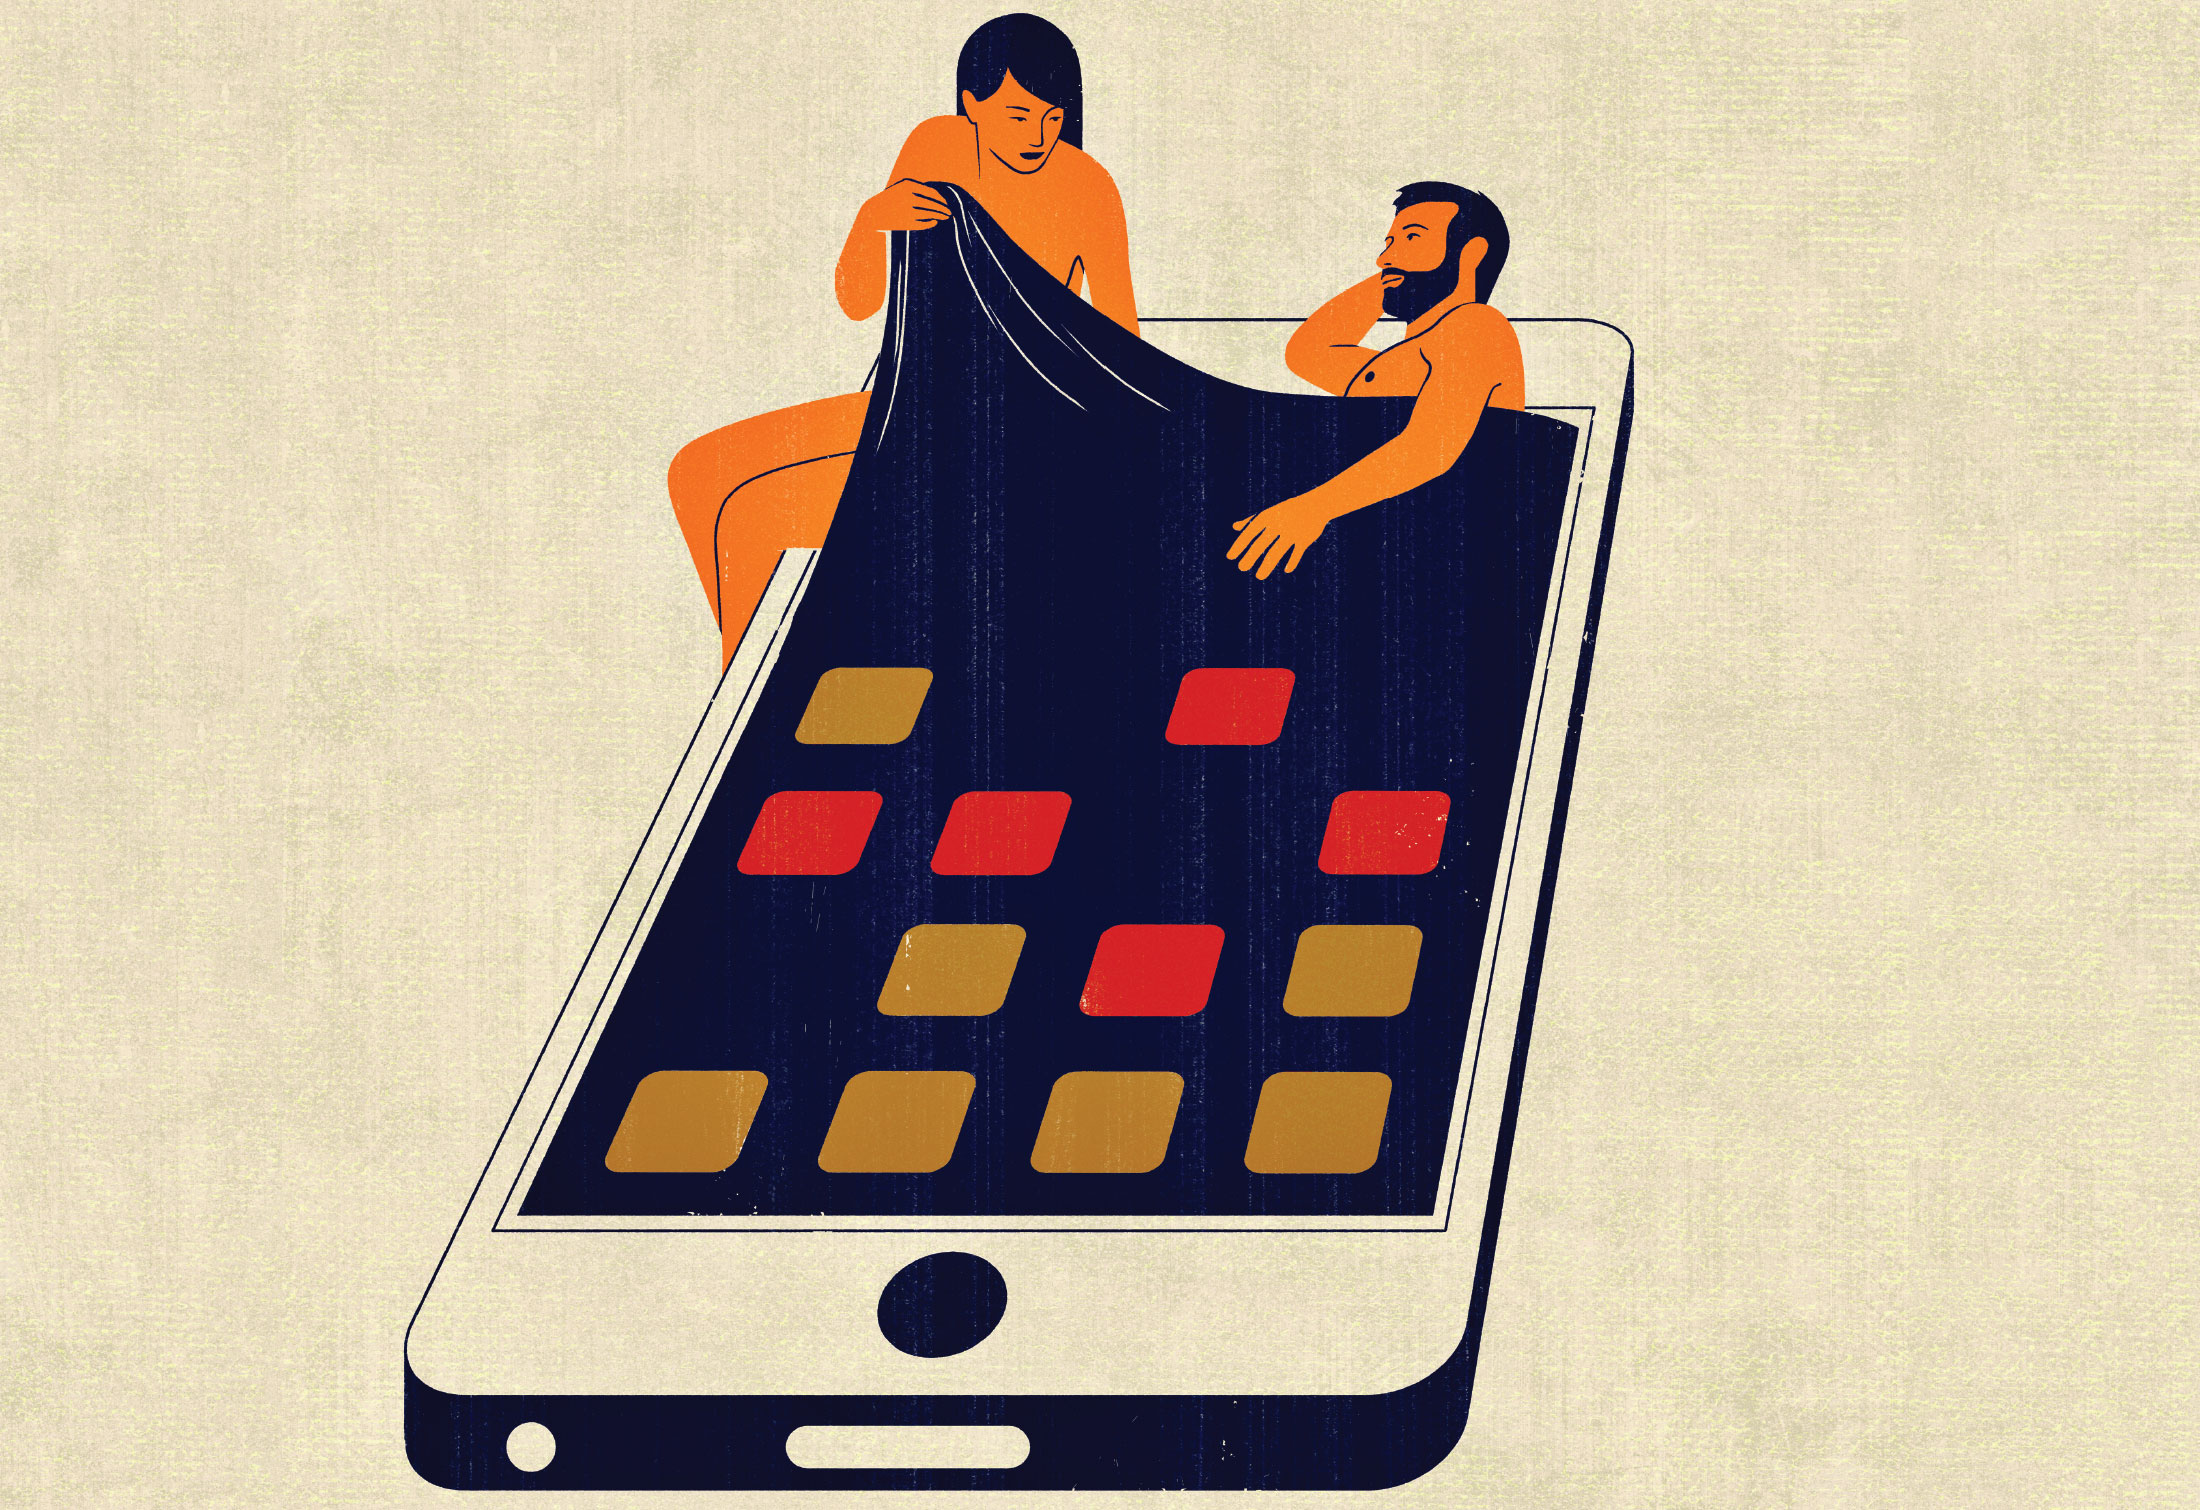 Is your spouse texting -- or cheating? - The Boston Globe